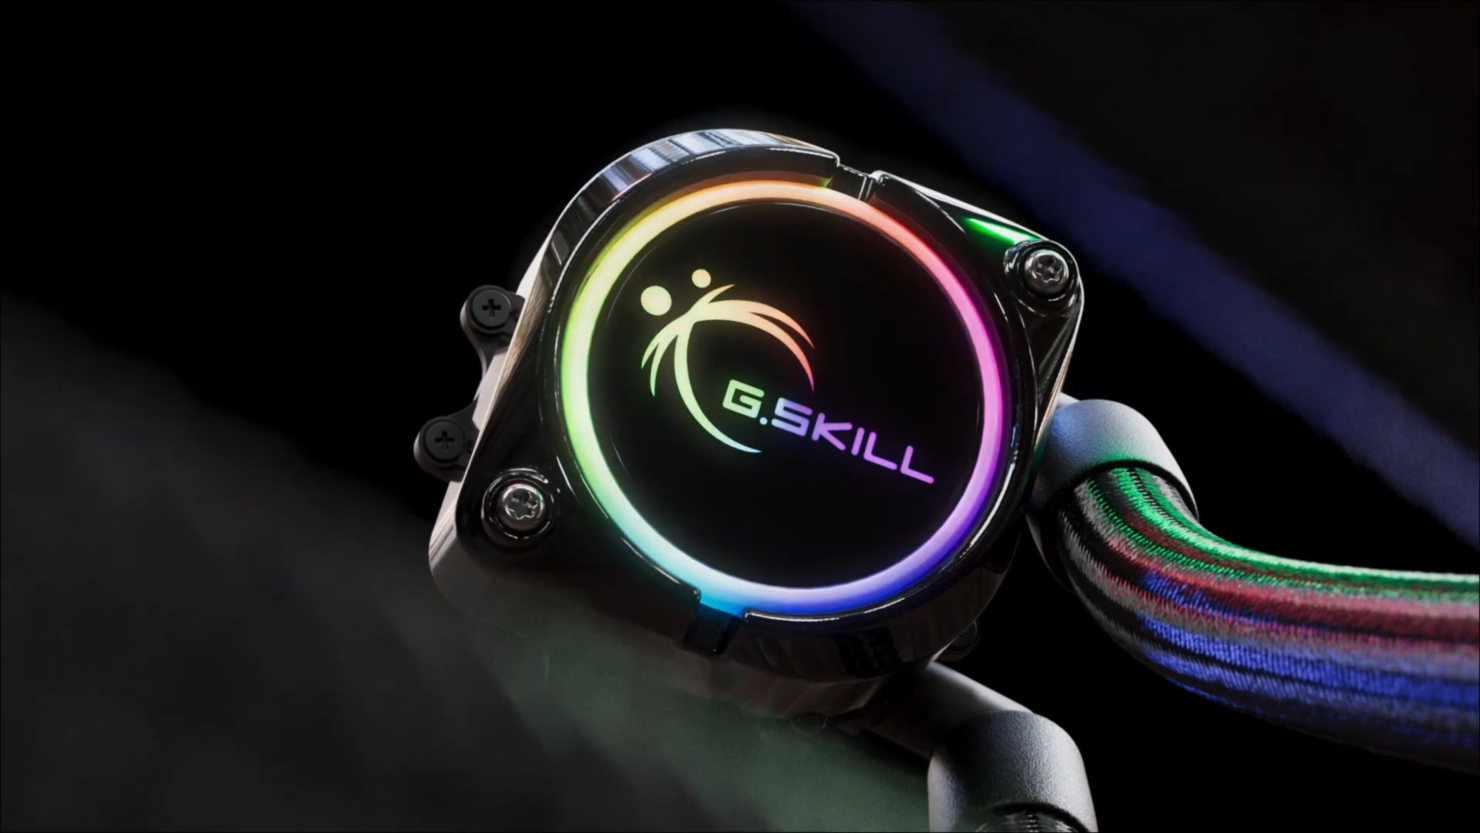 g.skill-enters-the-liquid-cooling-market,-unveils-enki-aio-liquid-coolers-in-360,-280-&-240mm-flavors